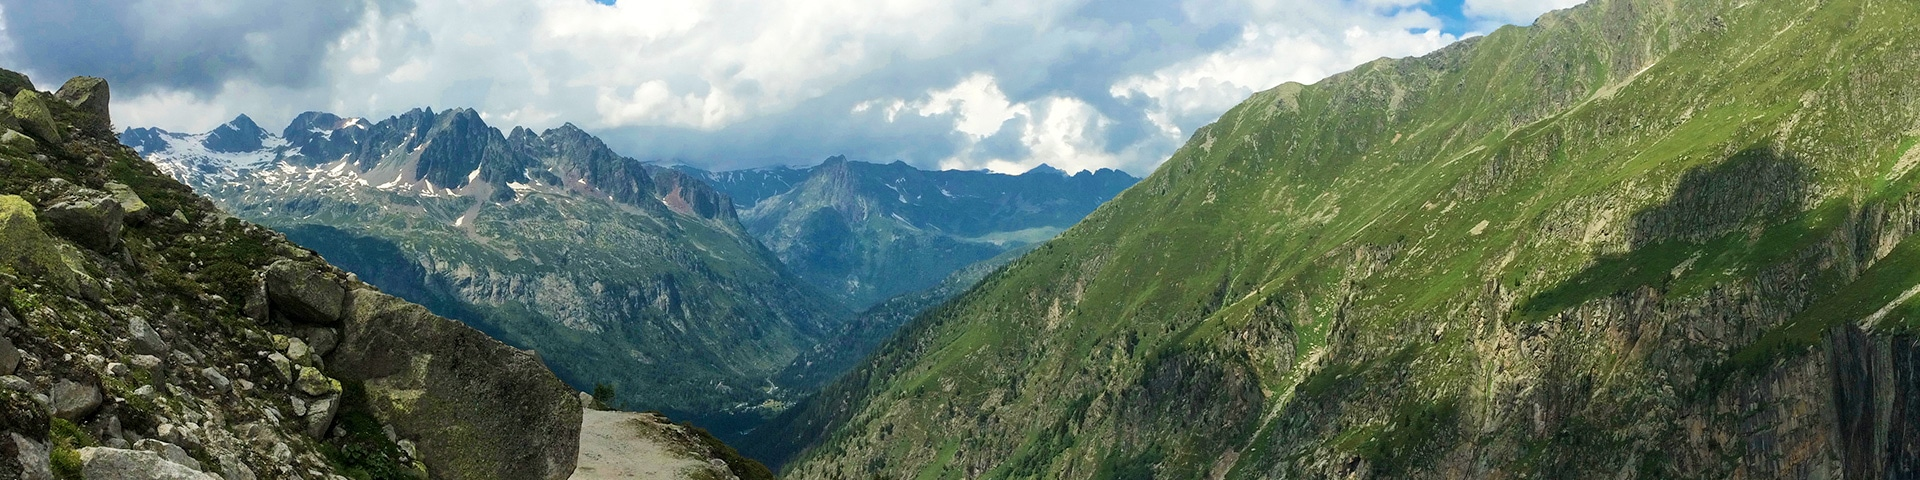 Panoramic views from the Point de Vue hike near Chamonix, France